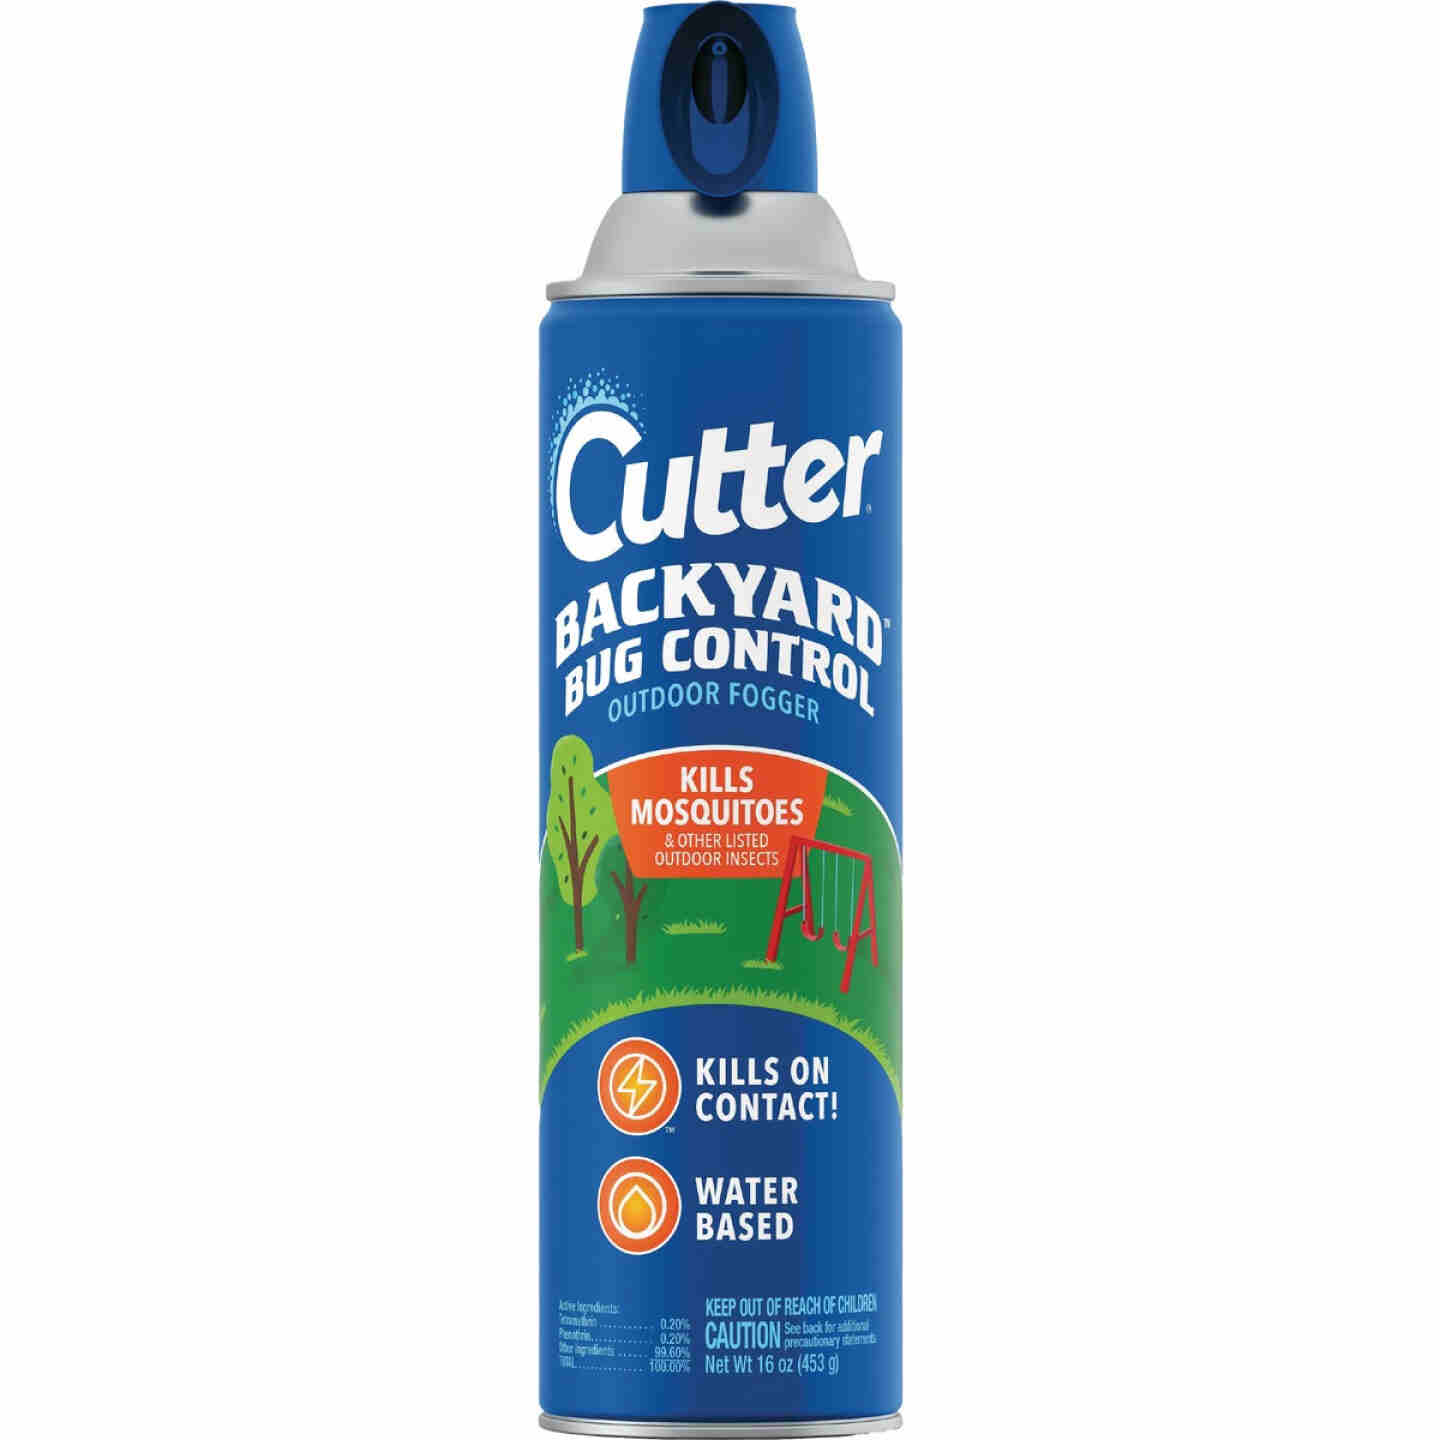 Cutter 16 Oz. Backyard Bug Control Outdoor Fogger Image 1